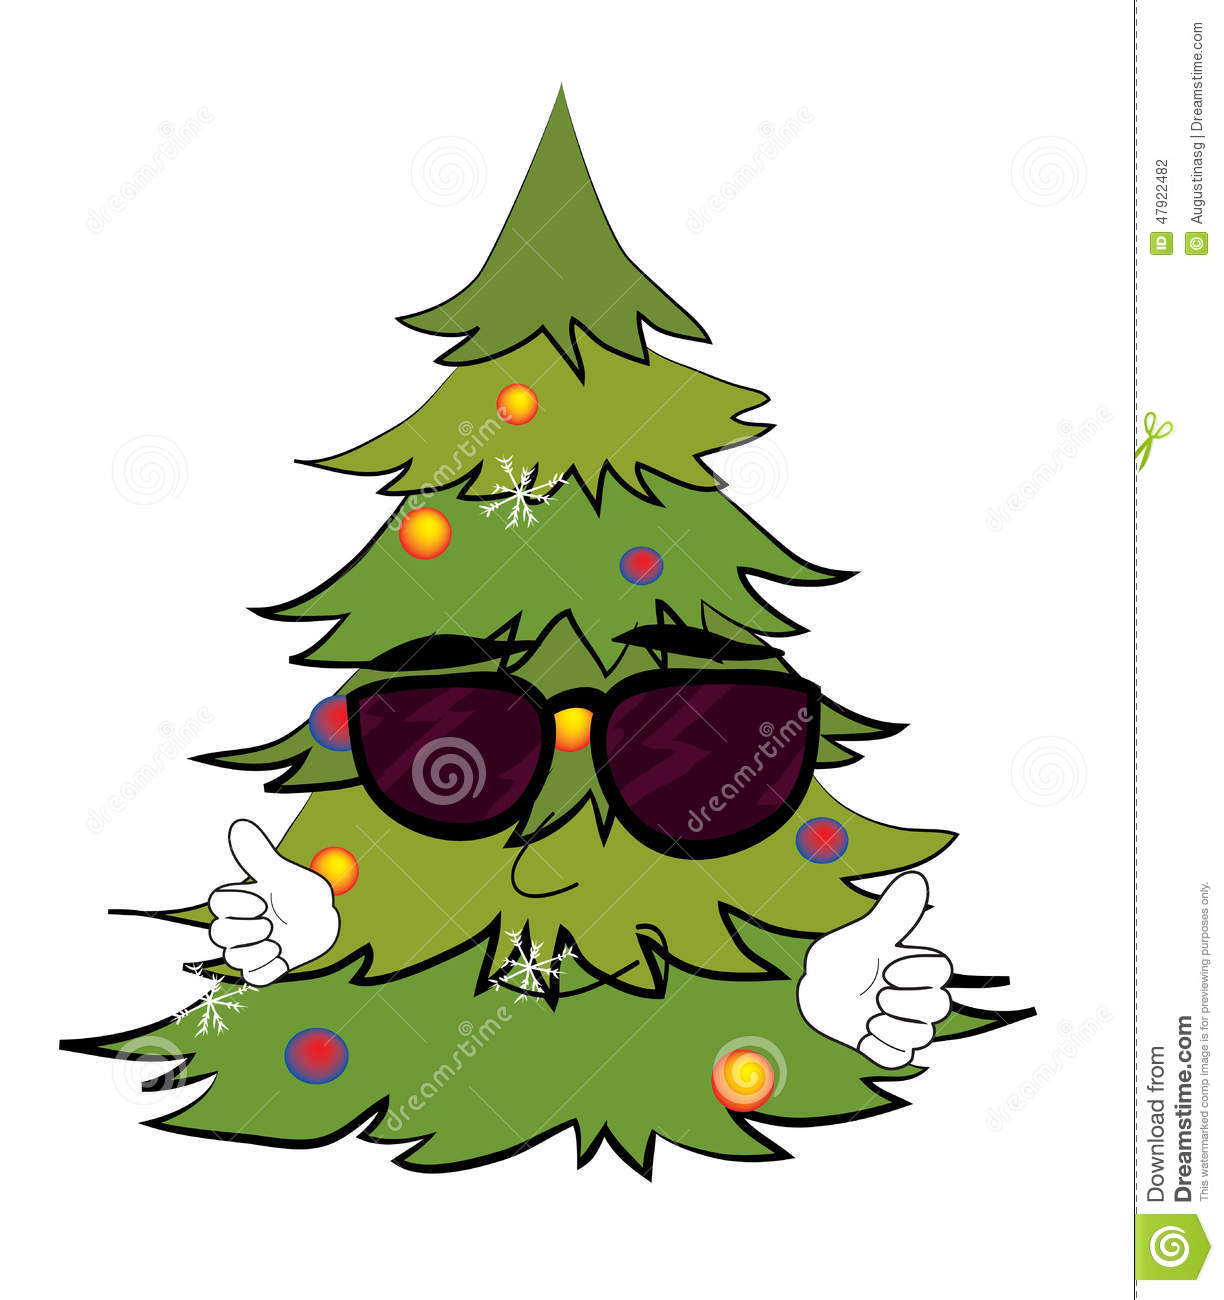 Cool Christmas Trees.Cool Christmas Tree Cartoon Stock Illustration